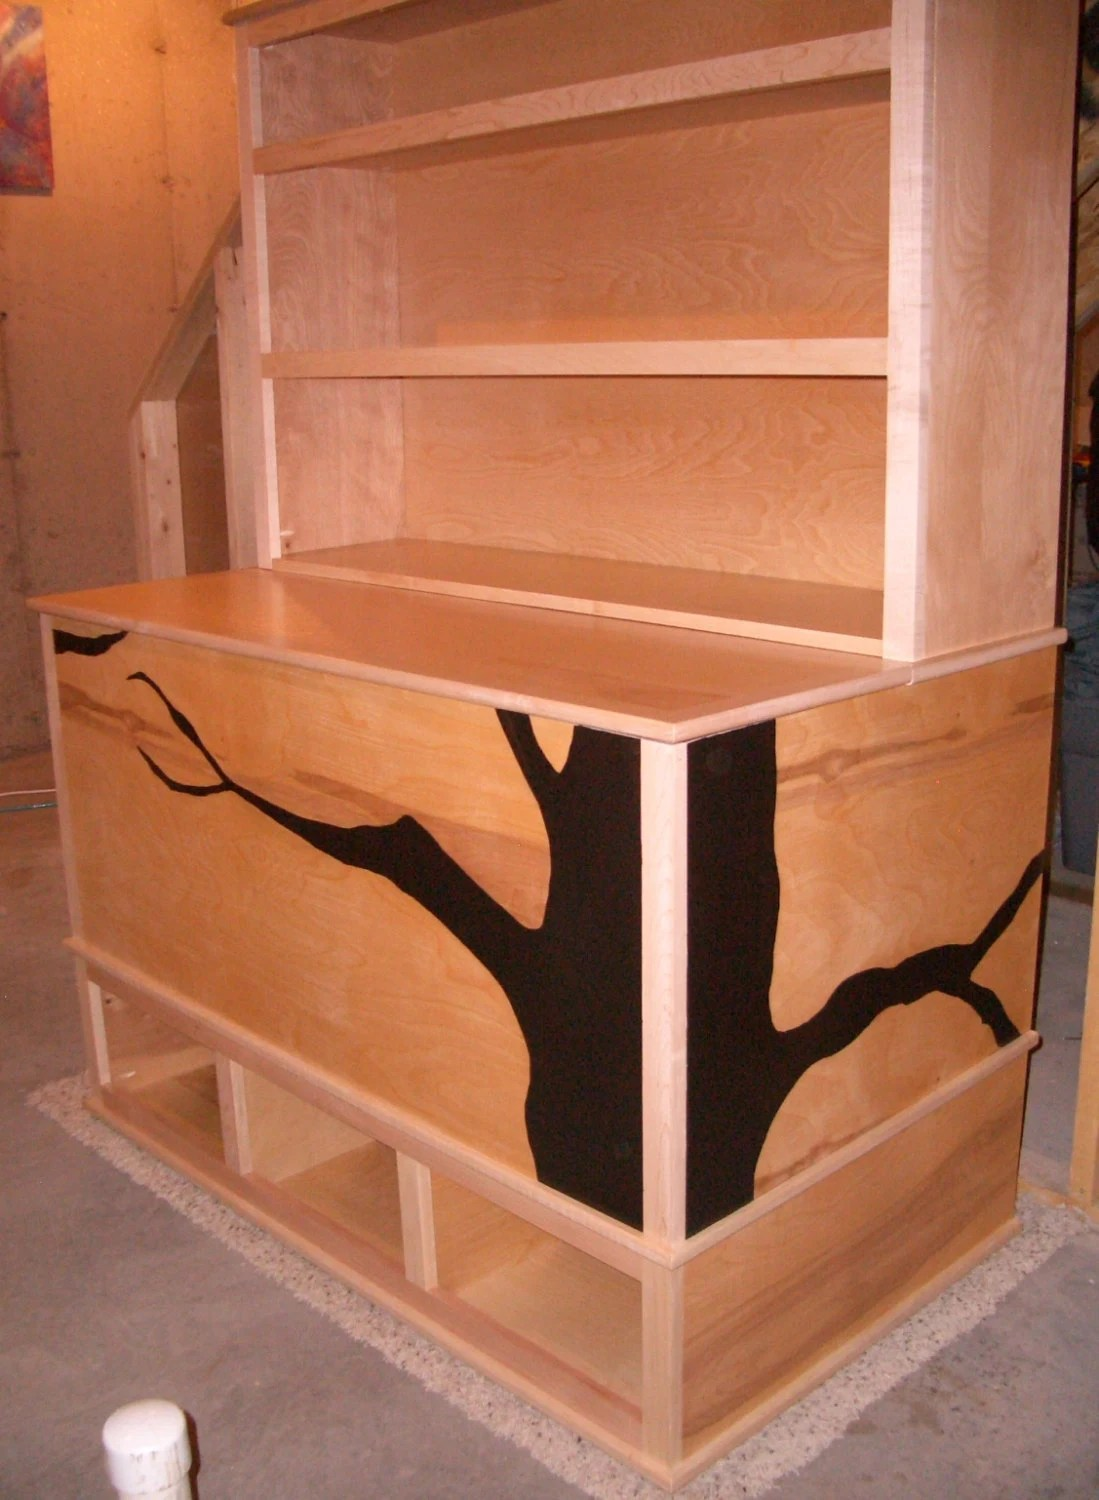 Toy Box With Bookshelf Woodworking Plans Toy Box With Cubbies And Bookshelf Plans Only